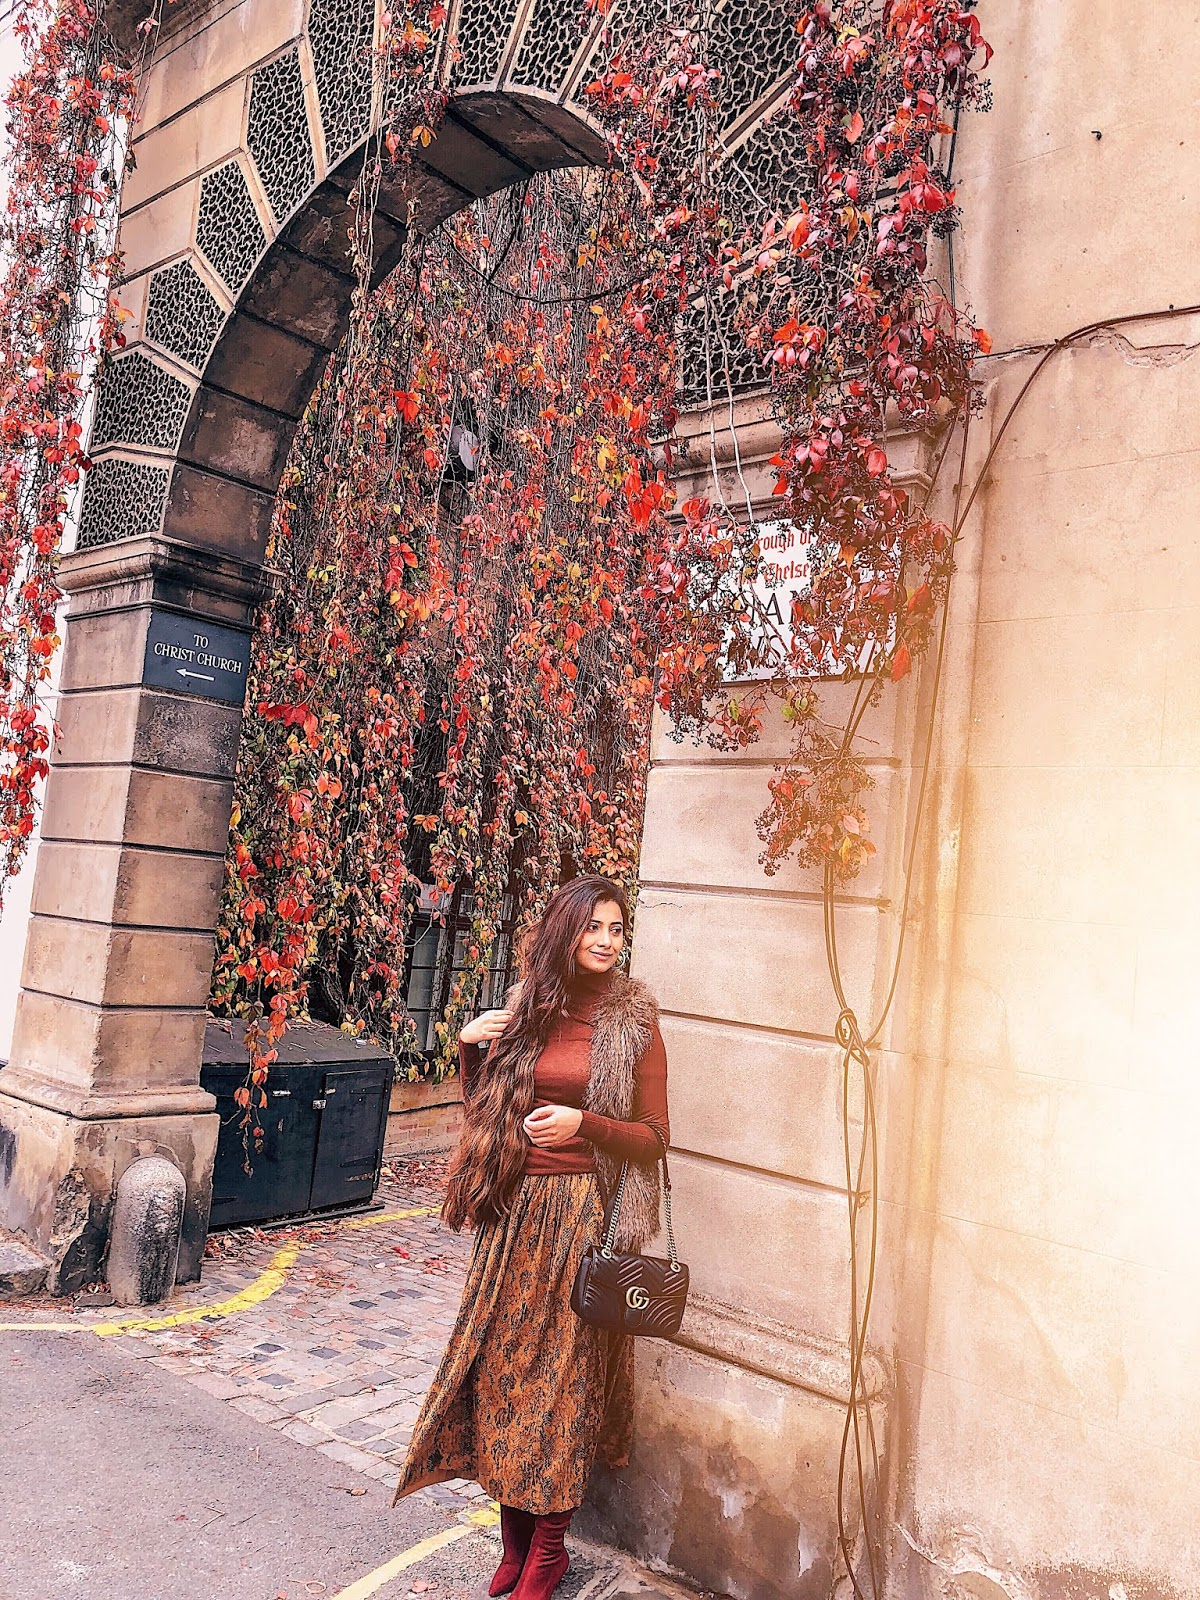 london instagram spot, autumn in london, indian blogger, london blog, kynance mews autumn, kynance mews